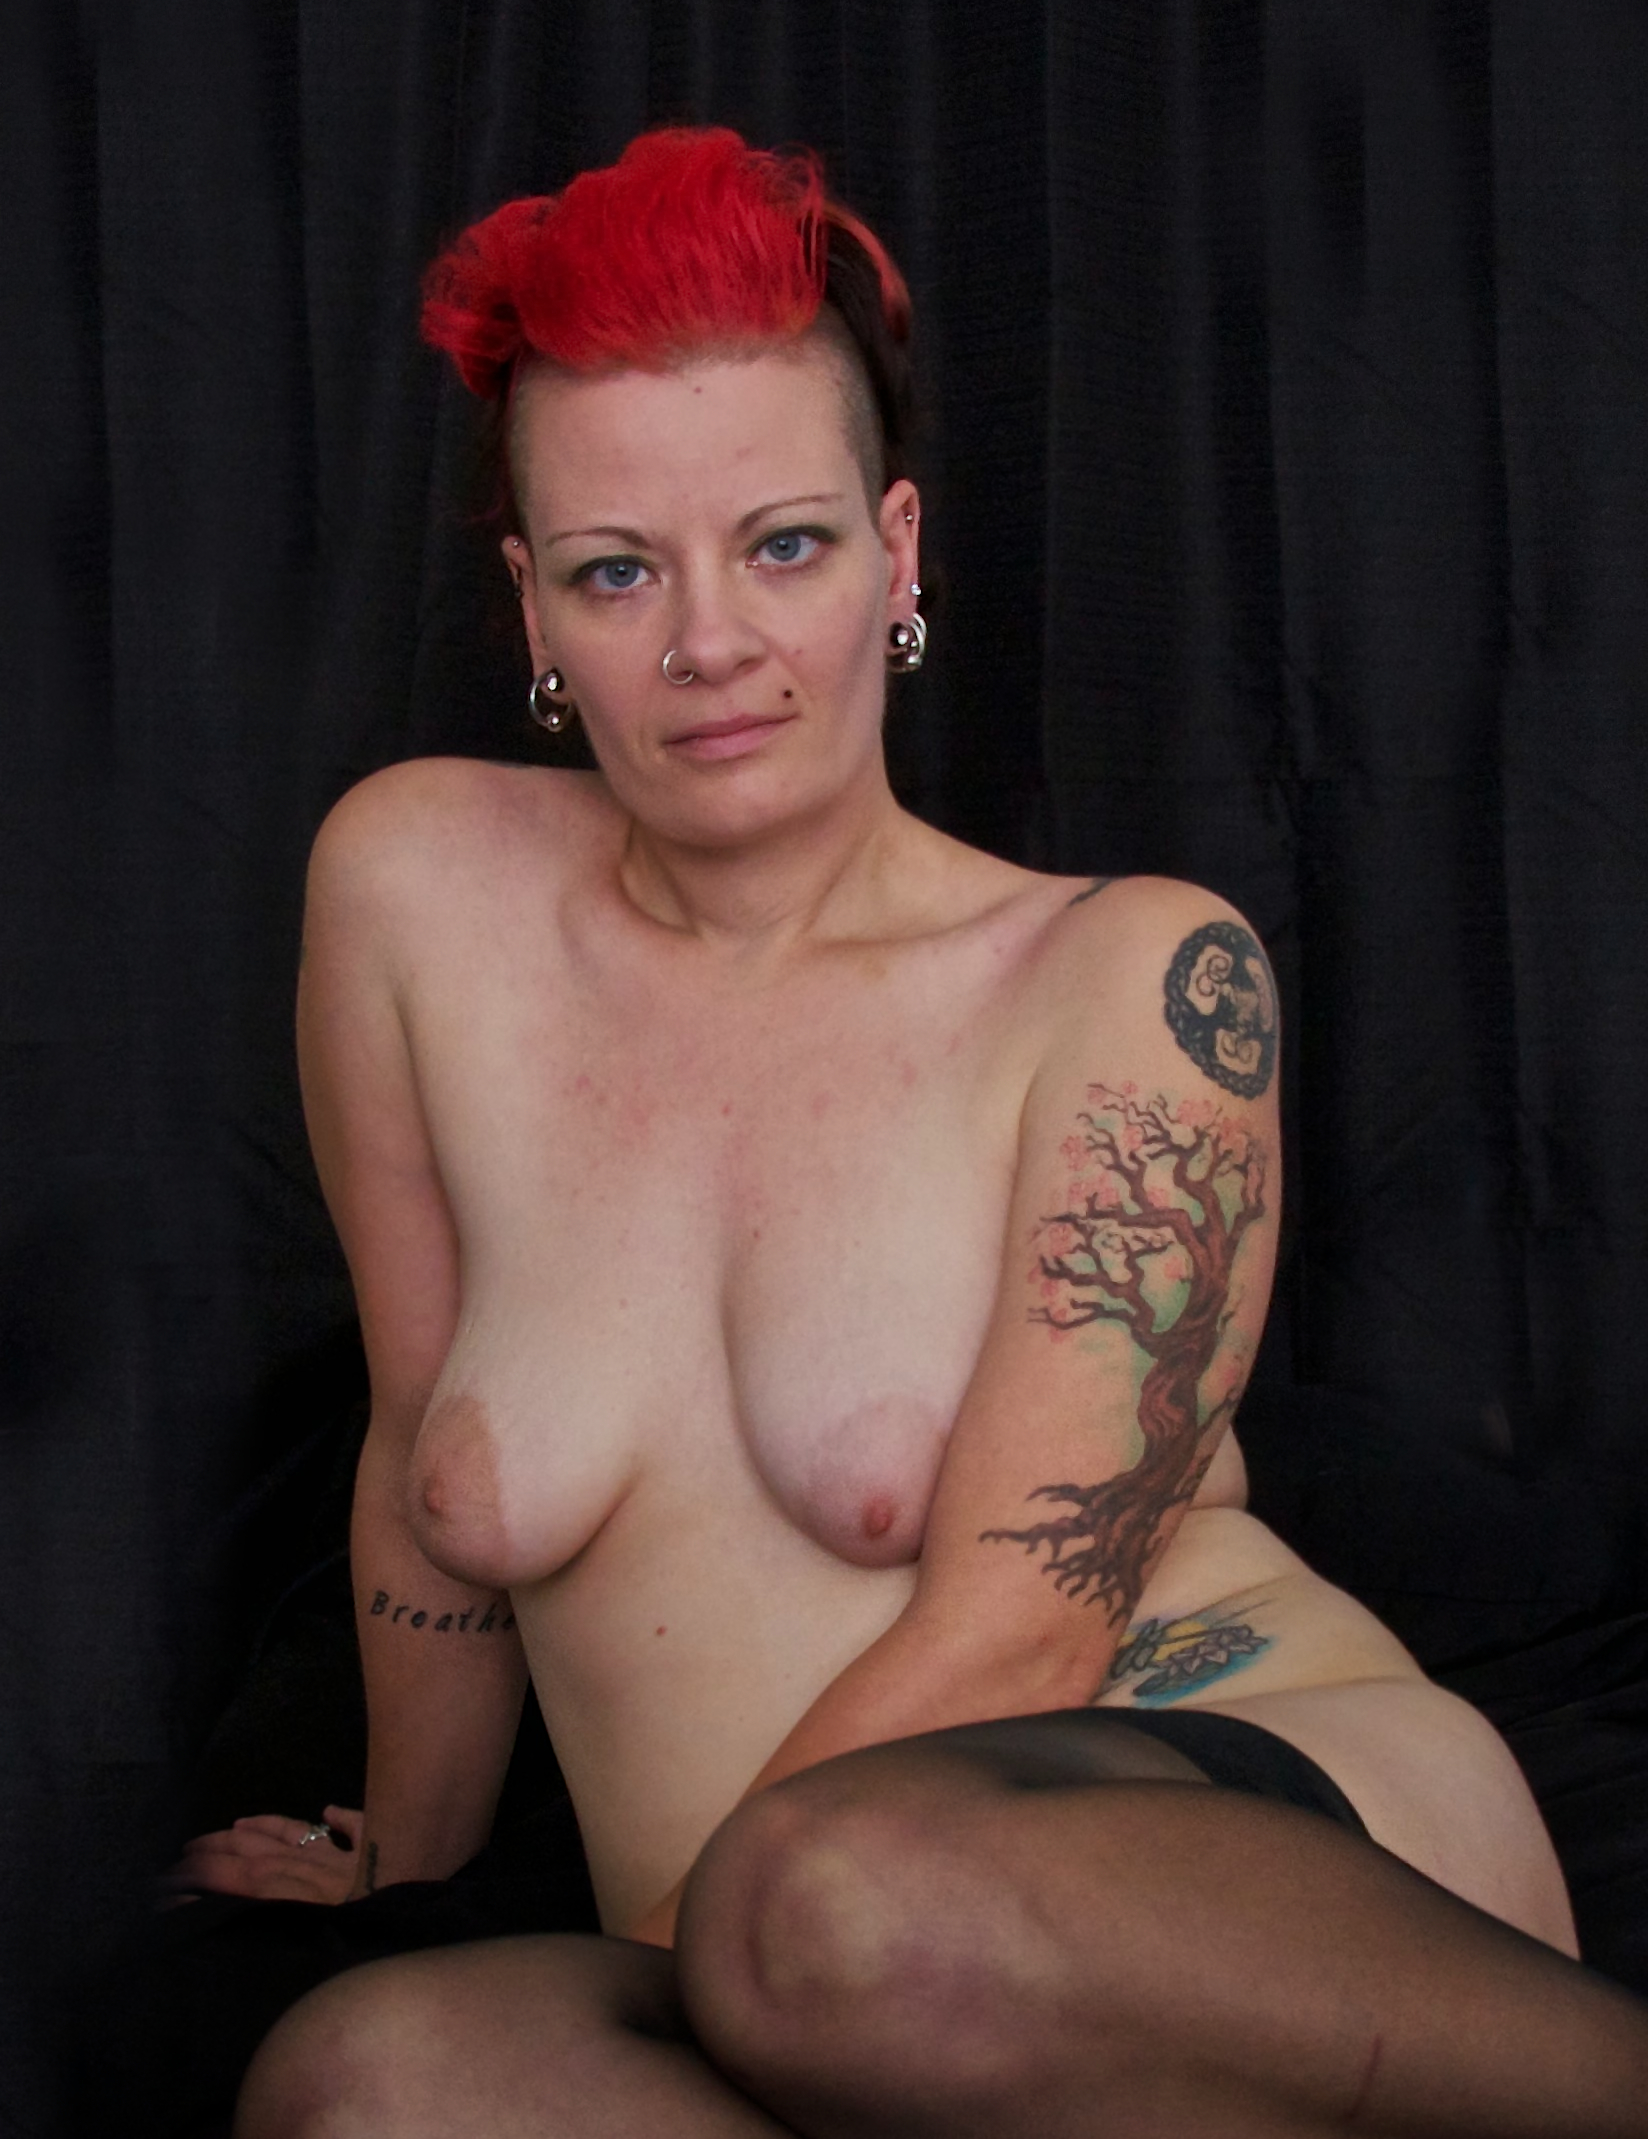 Bisexual woman with bright red hair